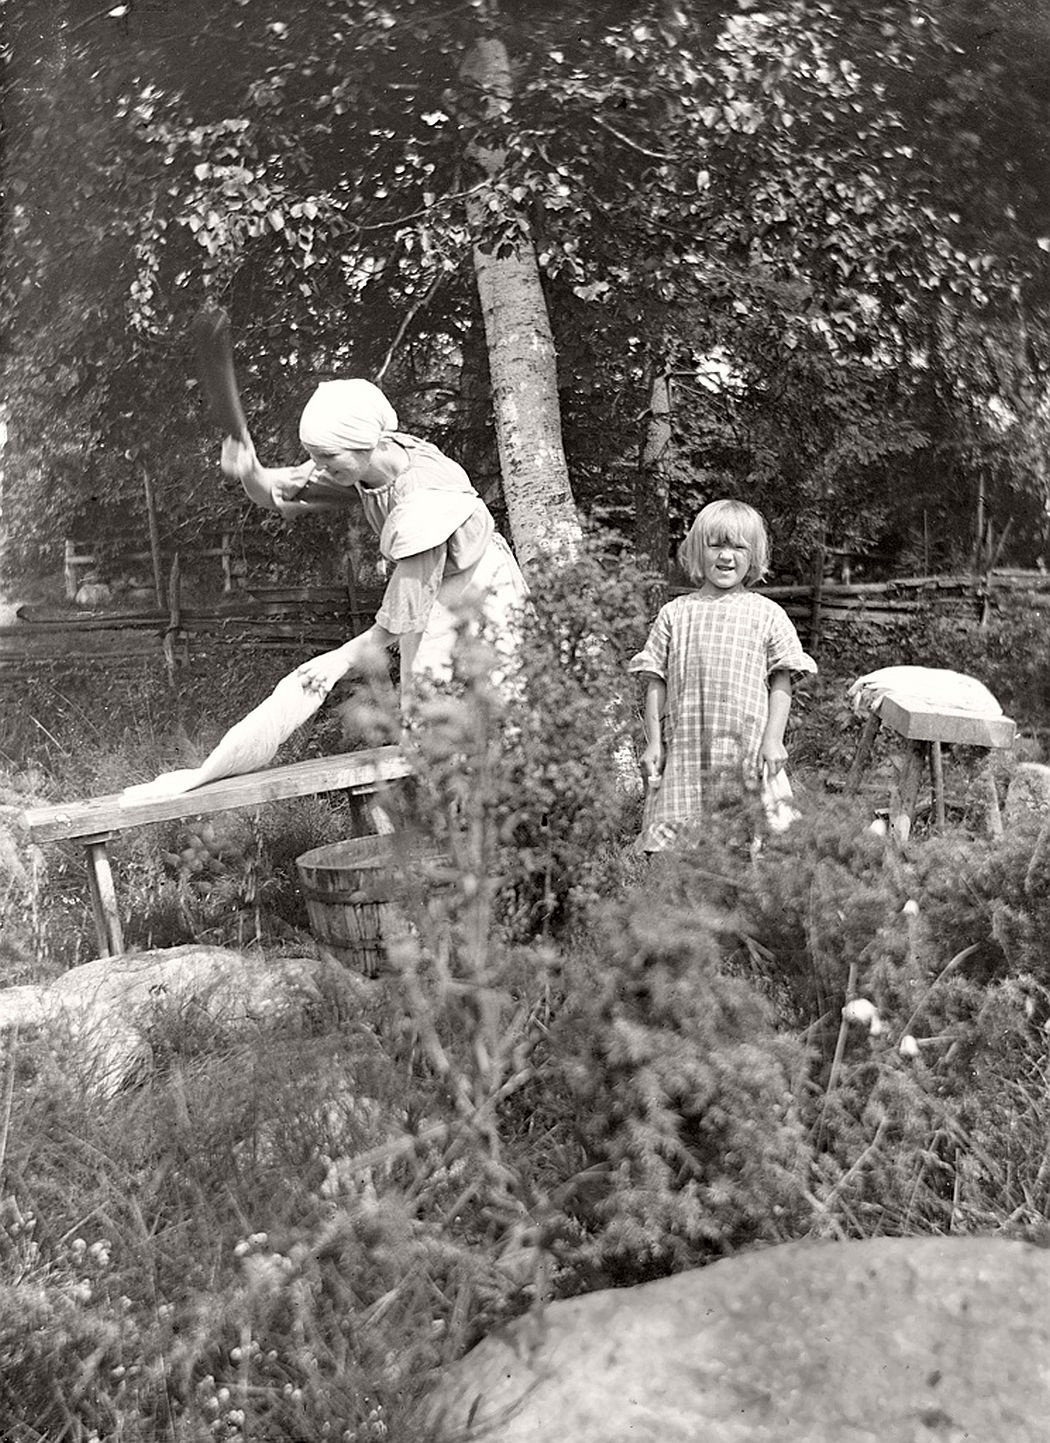 Photo from around 1925. Ebba Gustafsson (b. 1903) pats laundry and youngest sister Elin (b. 1918) stands next to it.